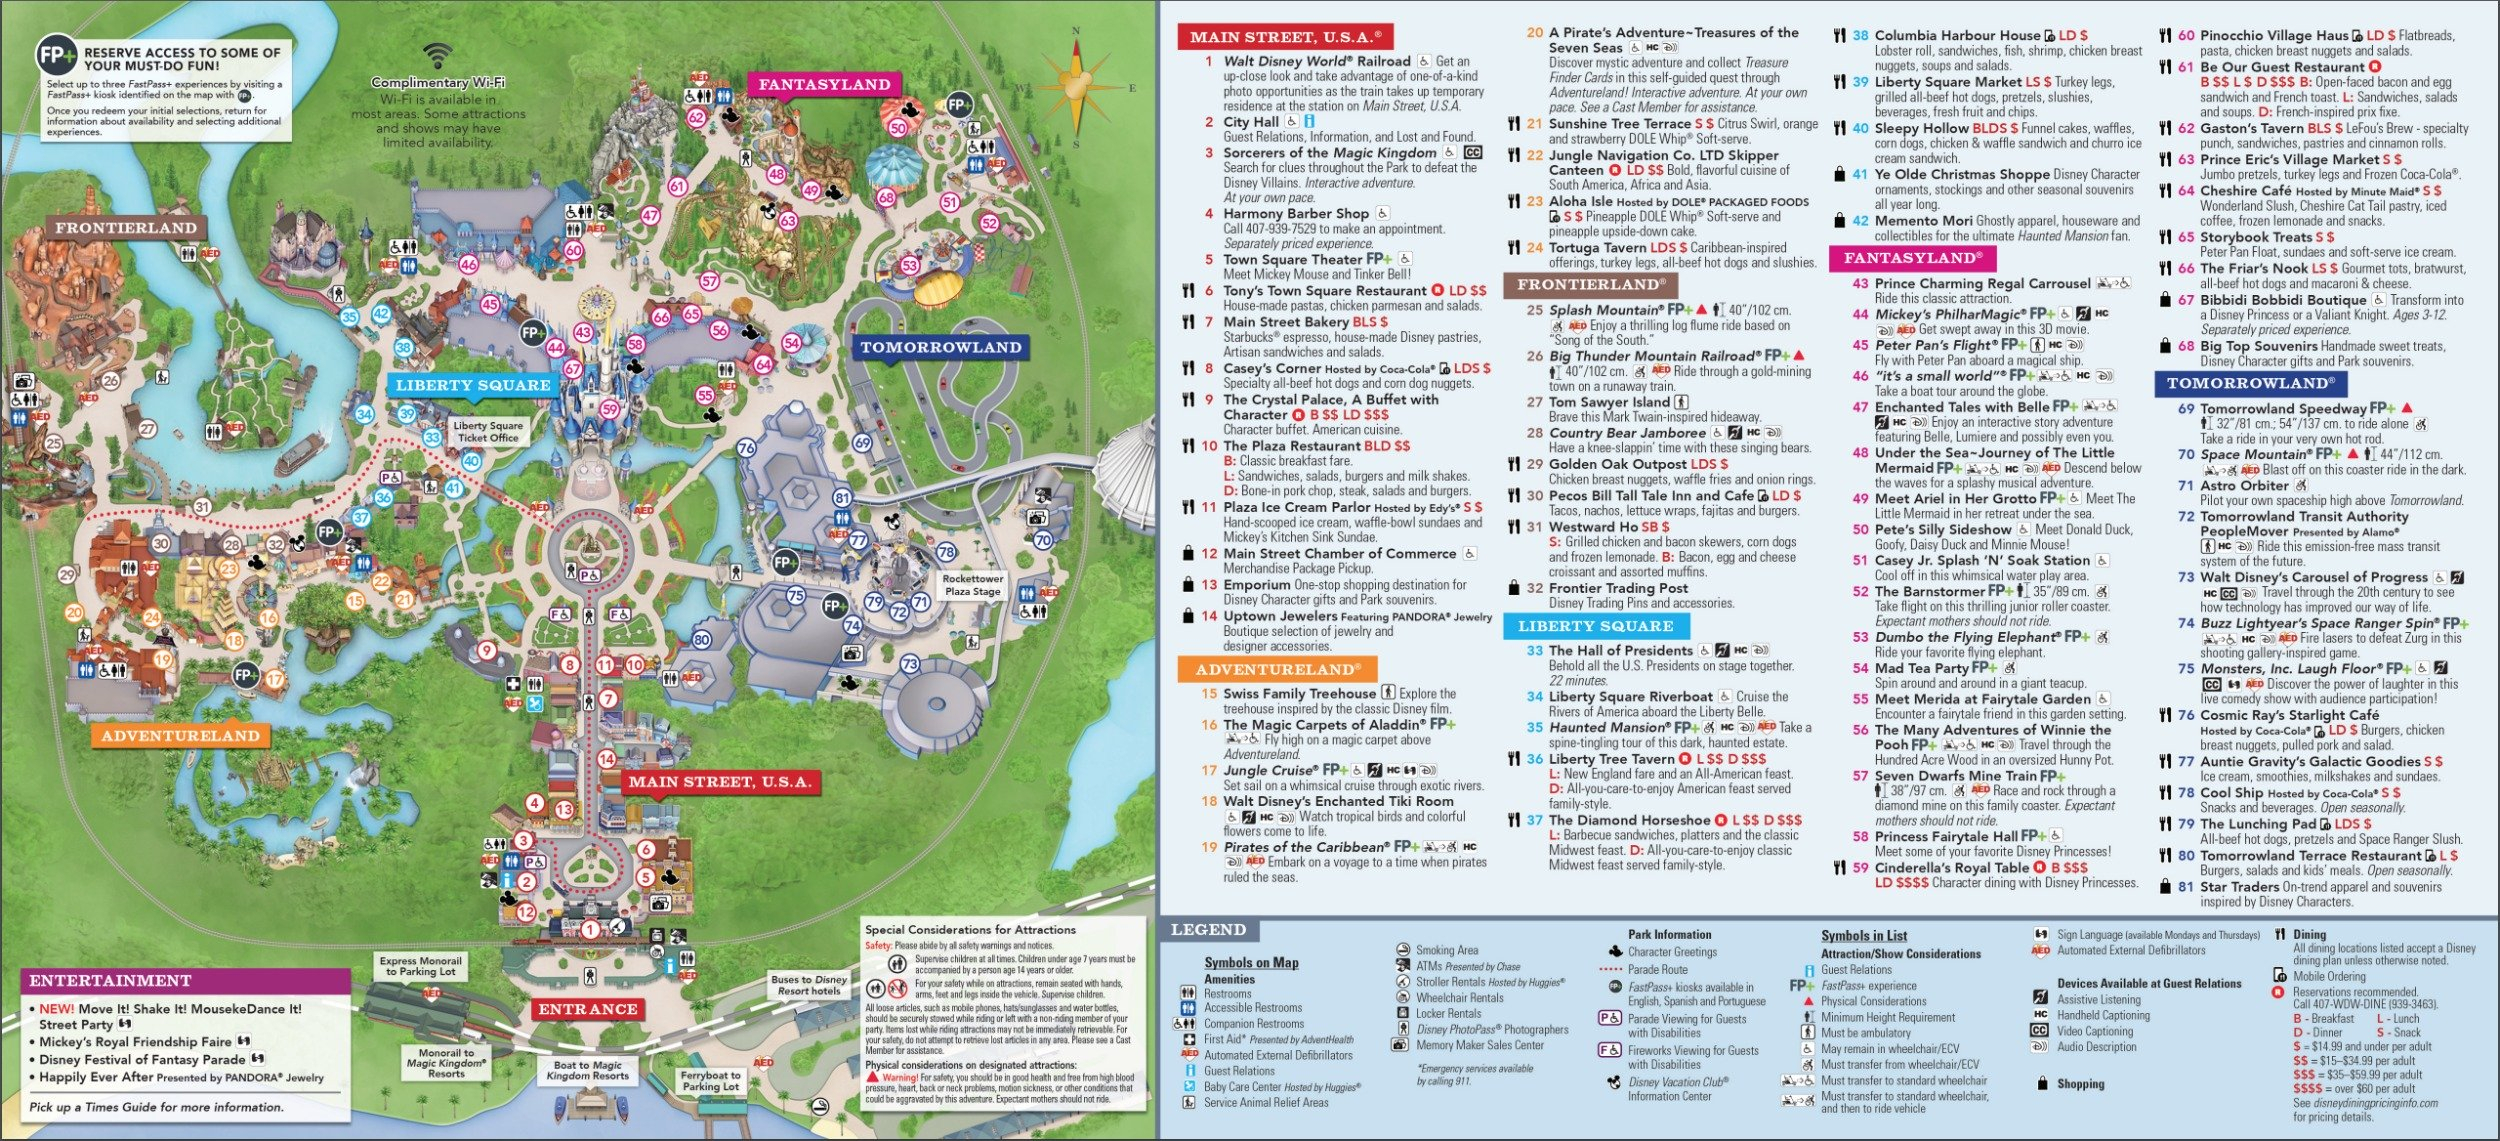 Magic Kingdom Park Map - Walt Disney World